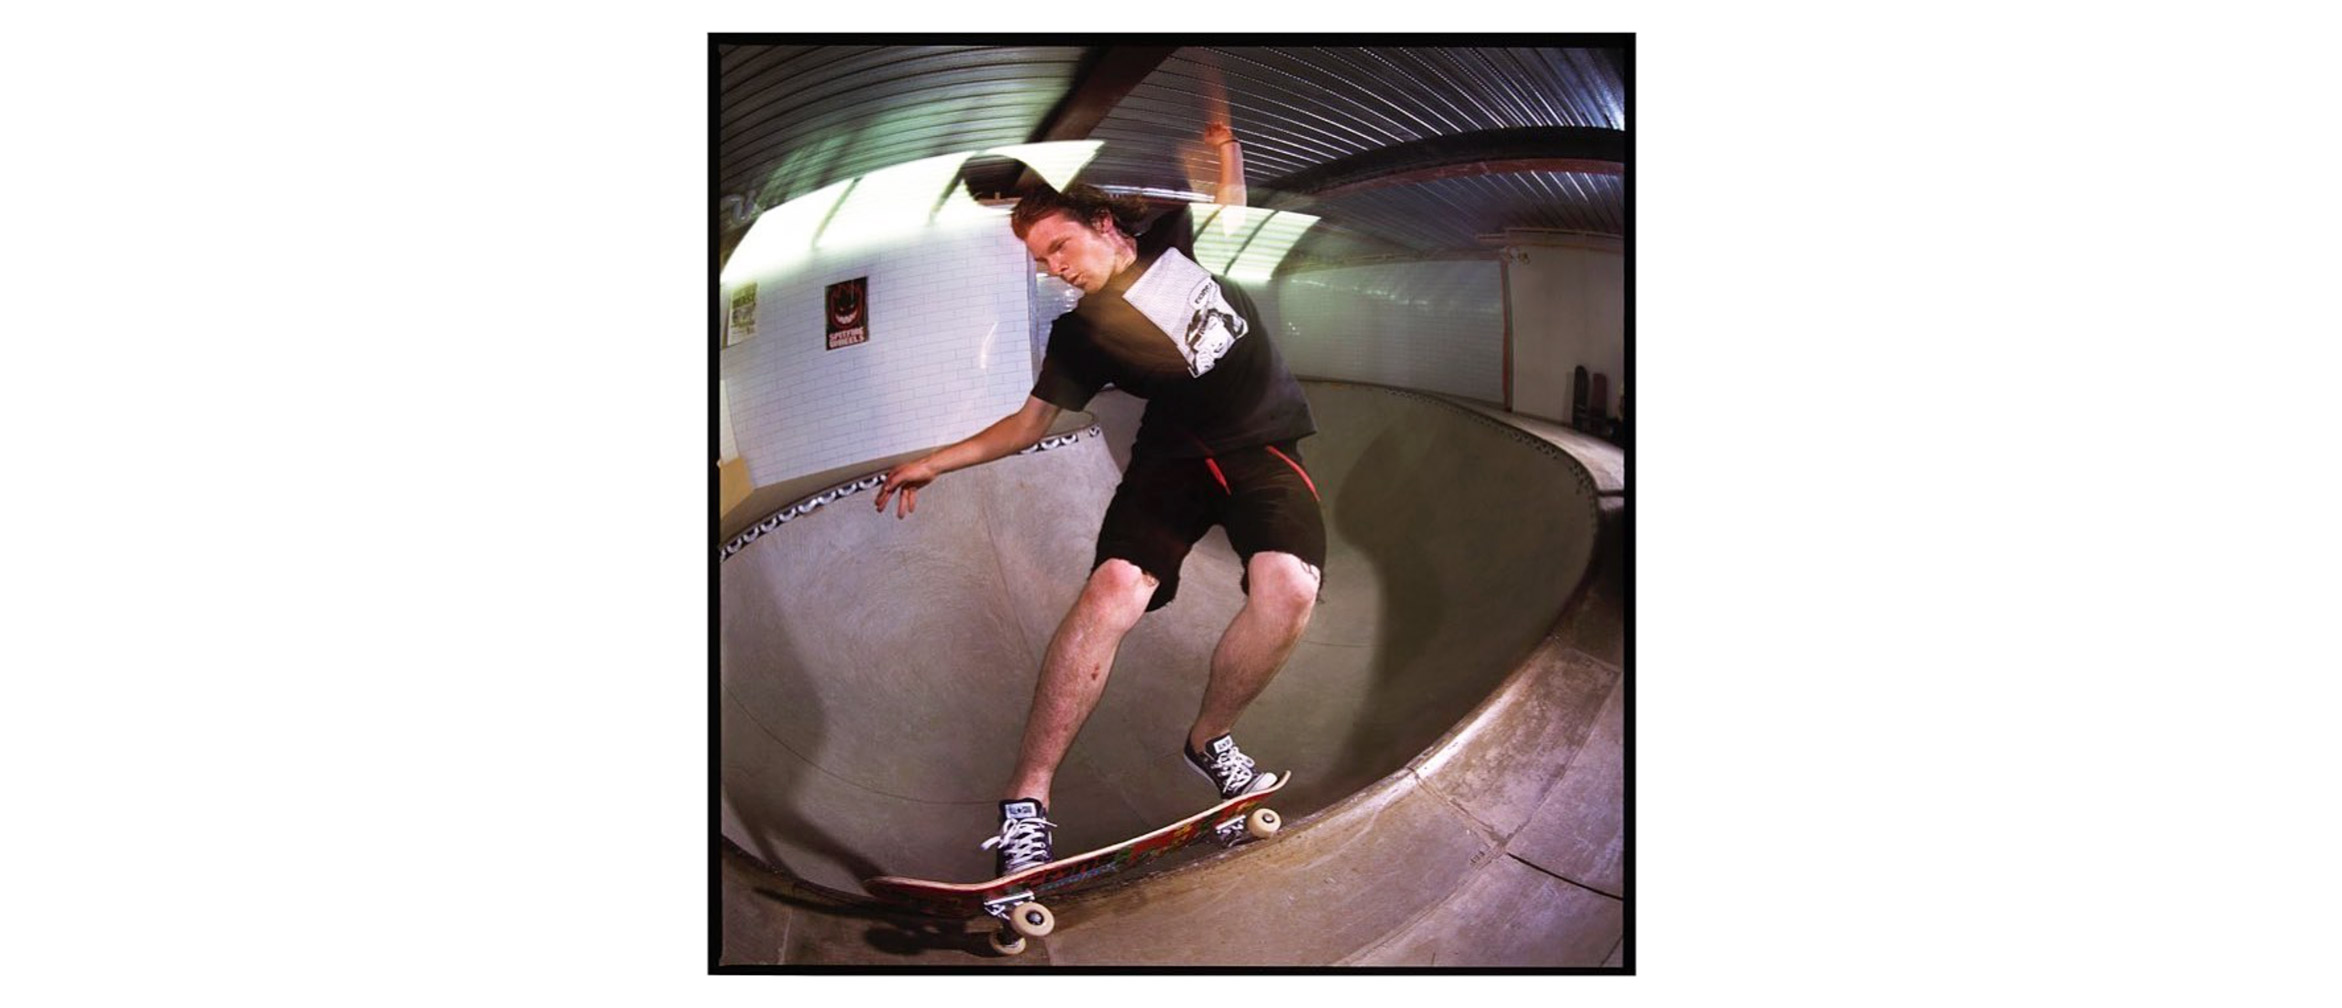 Bryce Golder frontside feeble in the shallow end, CSP headquarters, Steve Gourlay photo